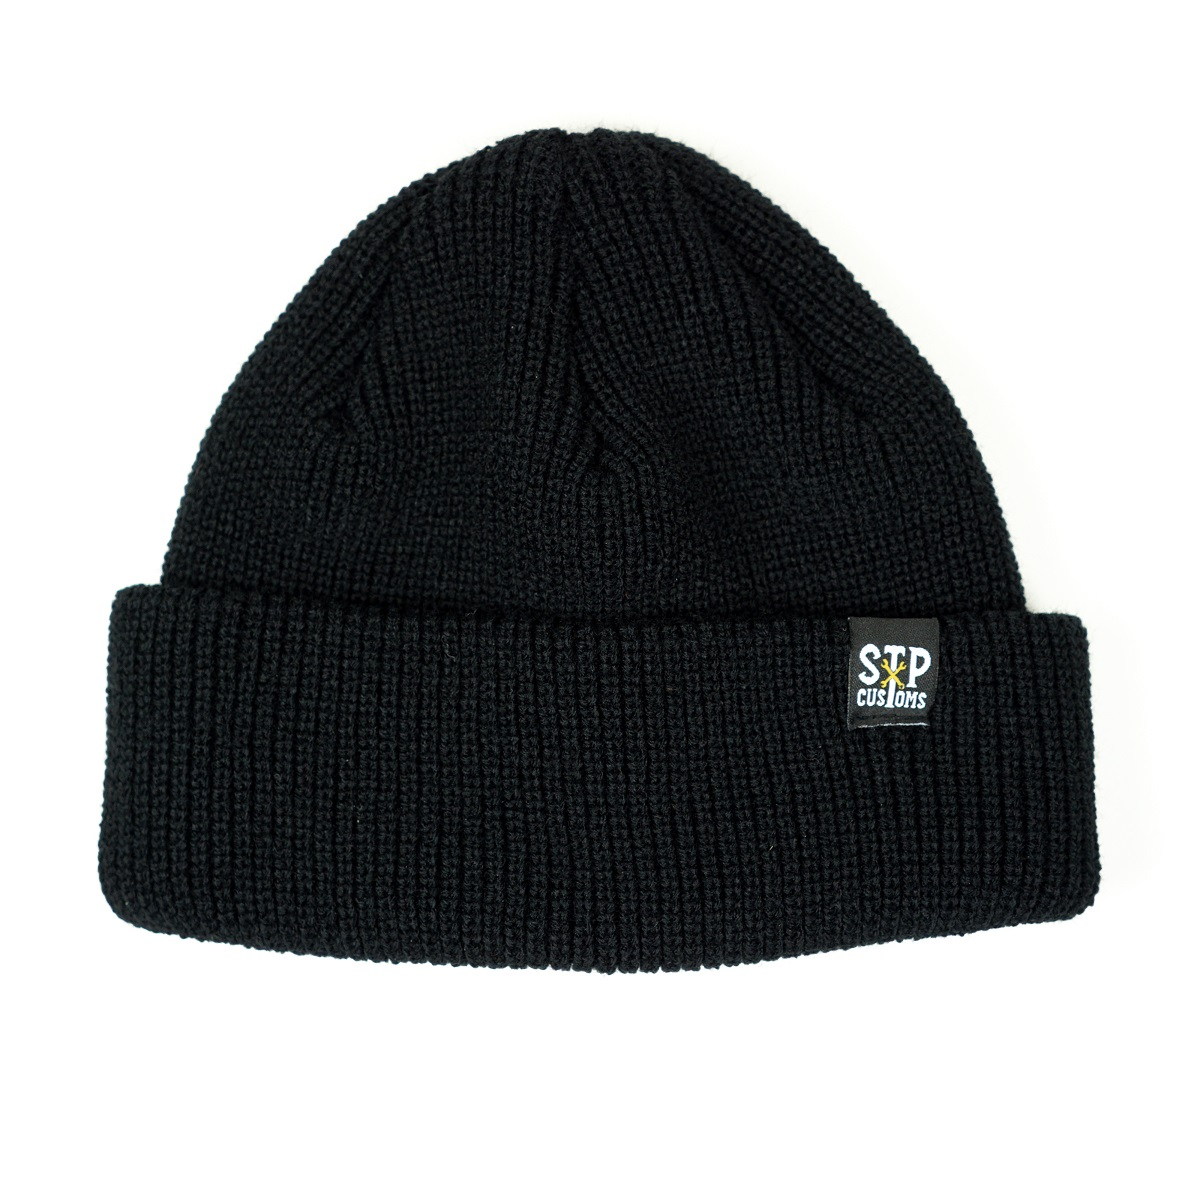 ST.P CUSTOMS BEANIE